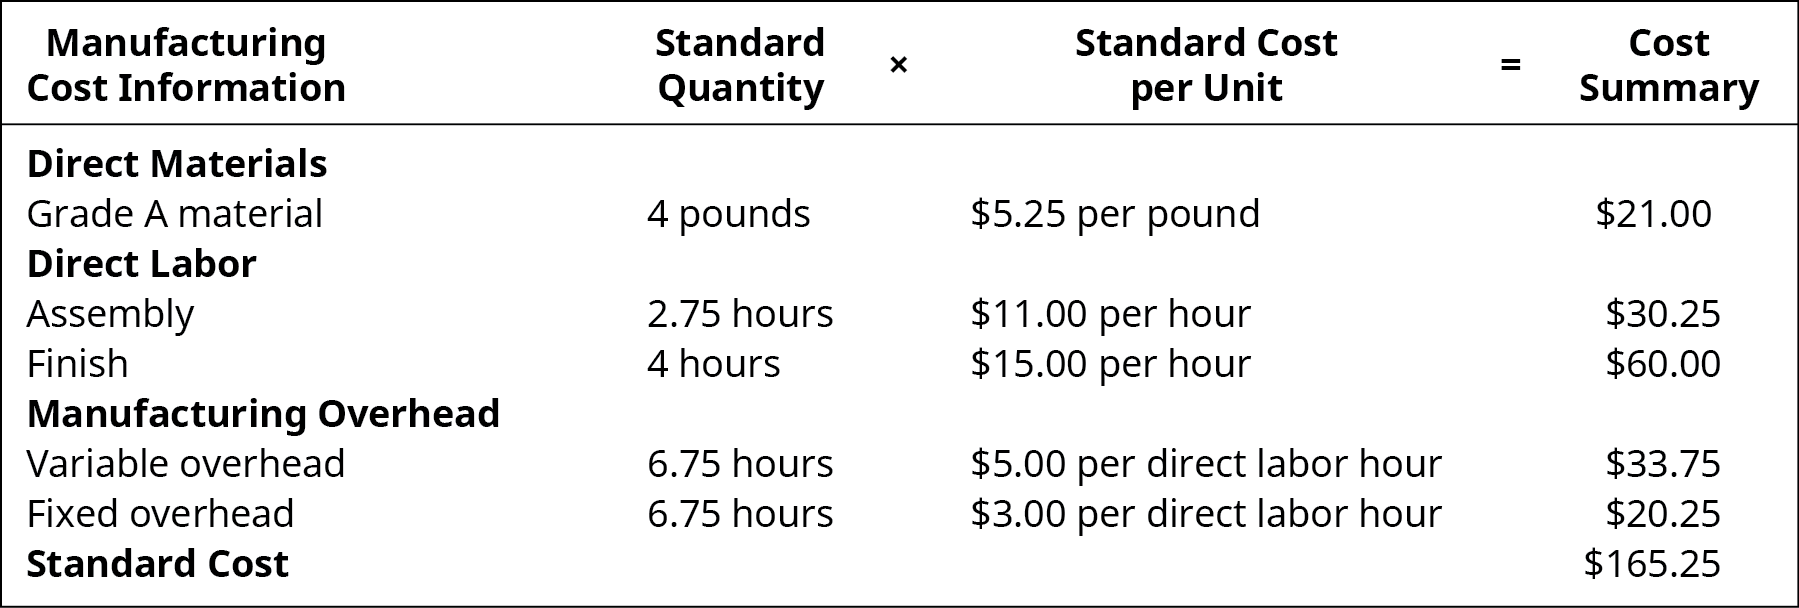 Manufacturing Cost Information: Standard Quantity times Standard Cost per Unit equals Cost Summary.